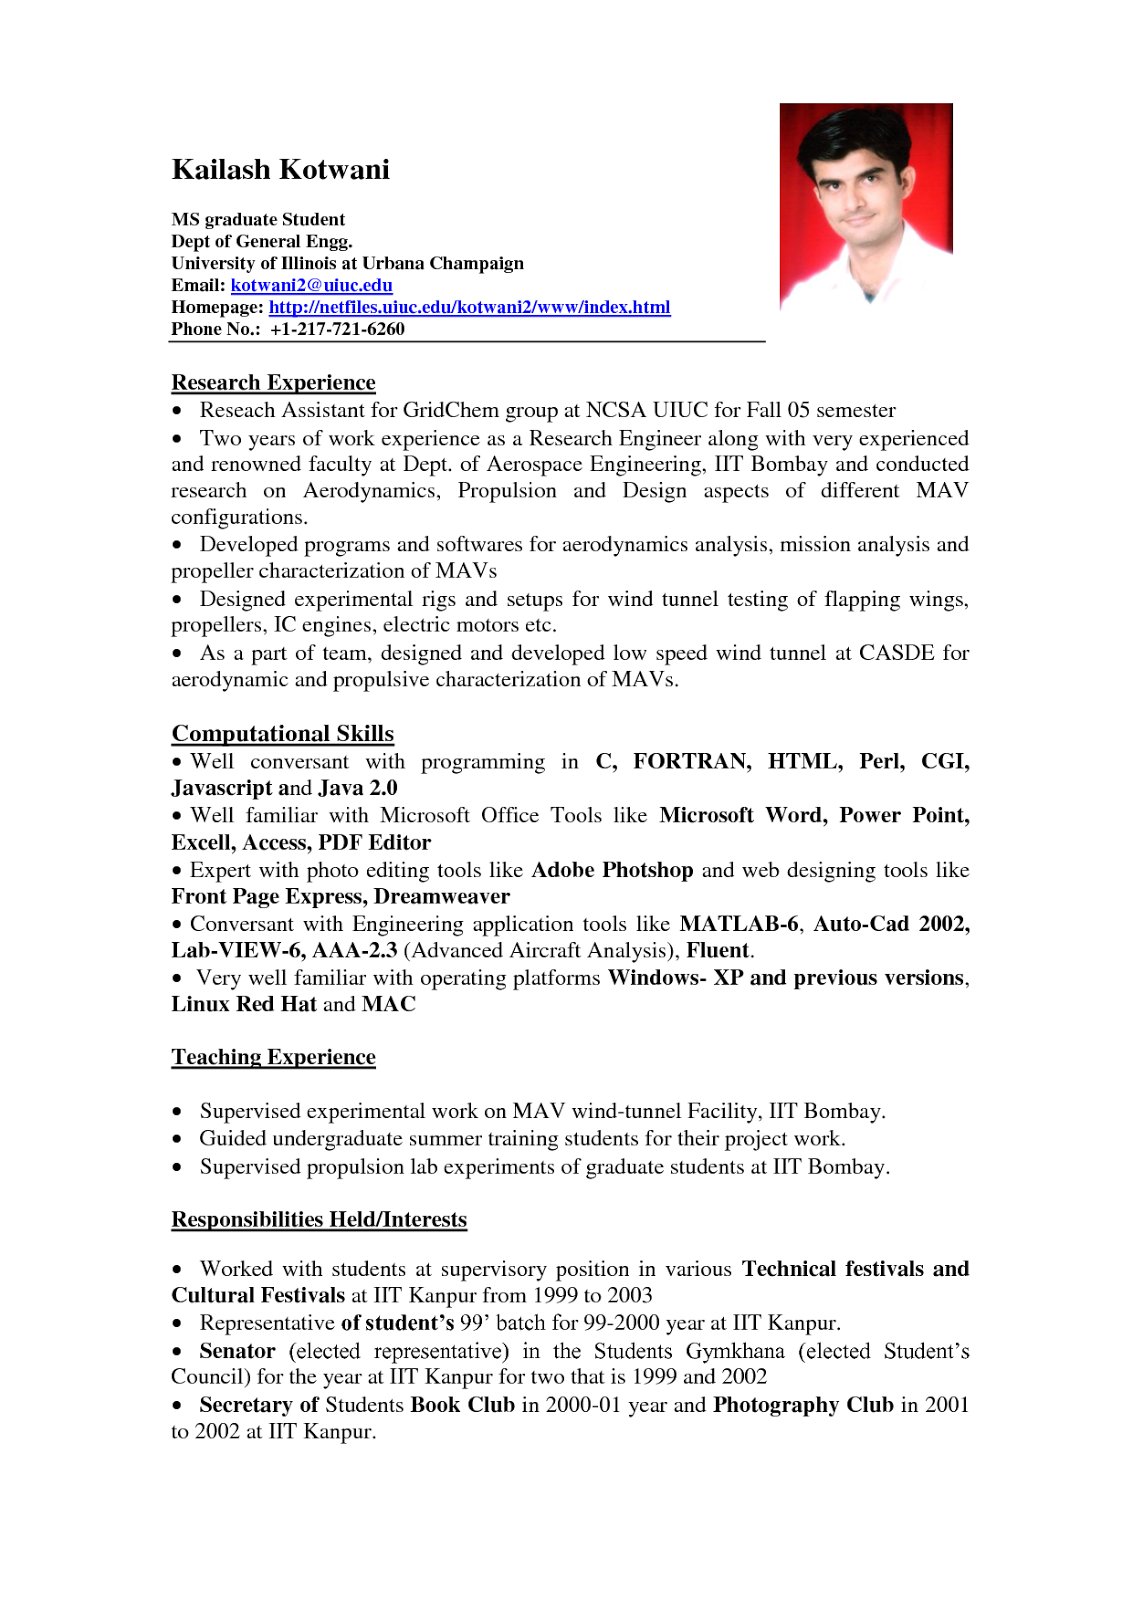 sample resume uk waitress cv example for restaurant bar livecareer full cv example hybrid cv example - Full Resume Sample